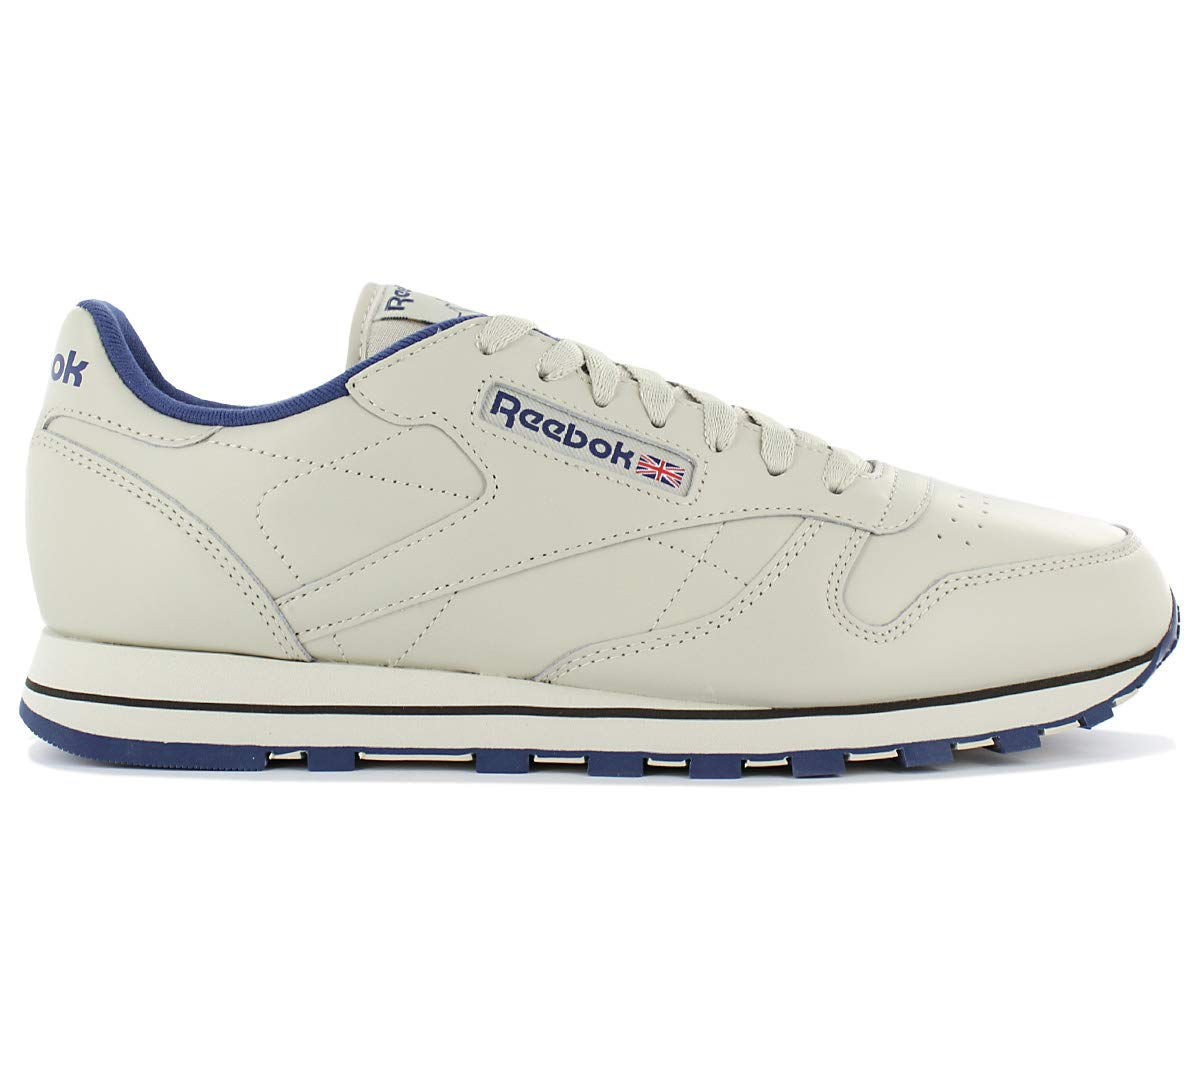 Buty Reebok Classic Leather 28412 10